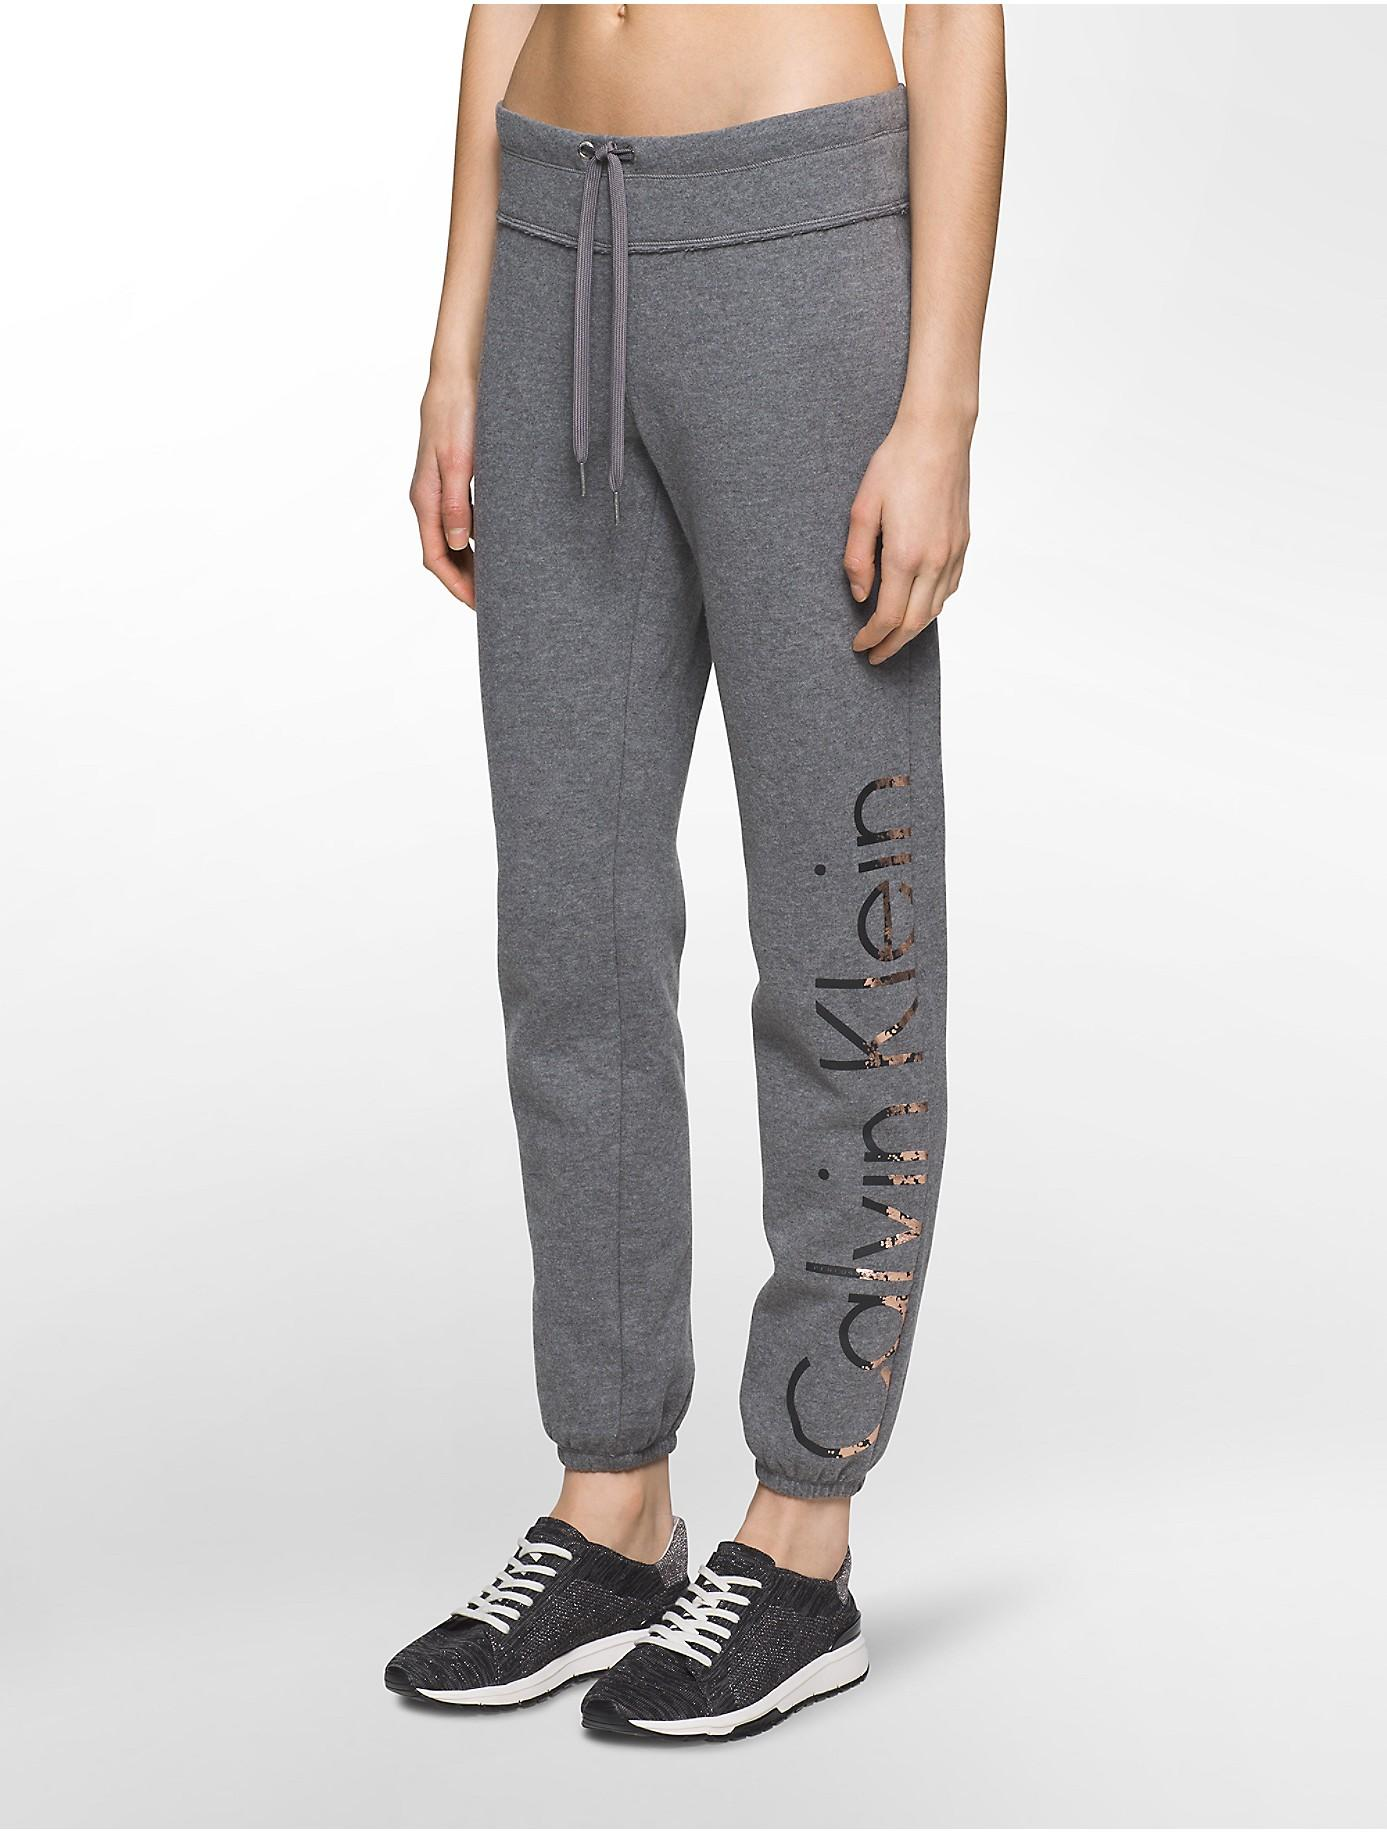 Calvin klein Performance Logo Sweatpants in Gray